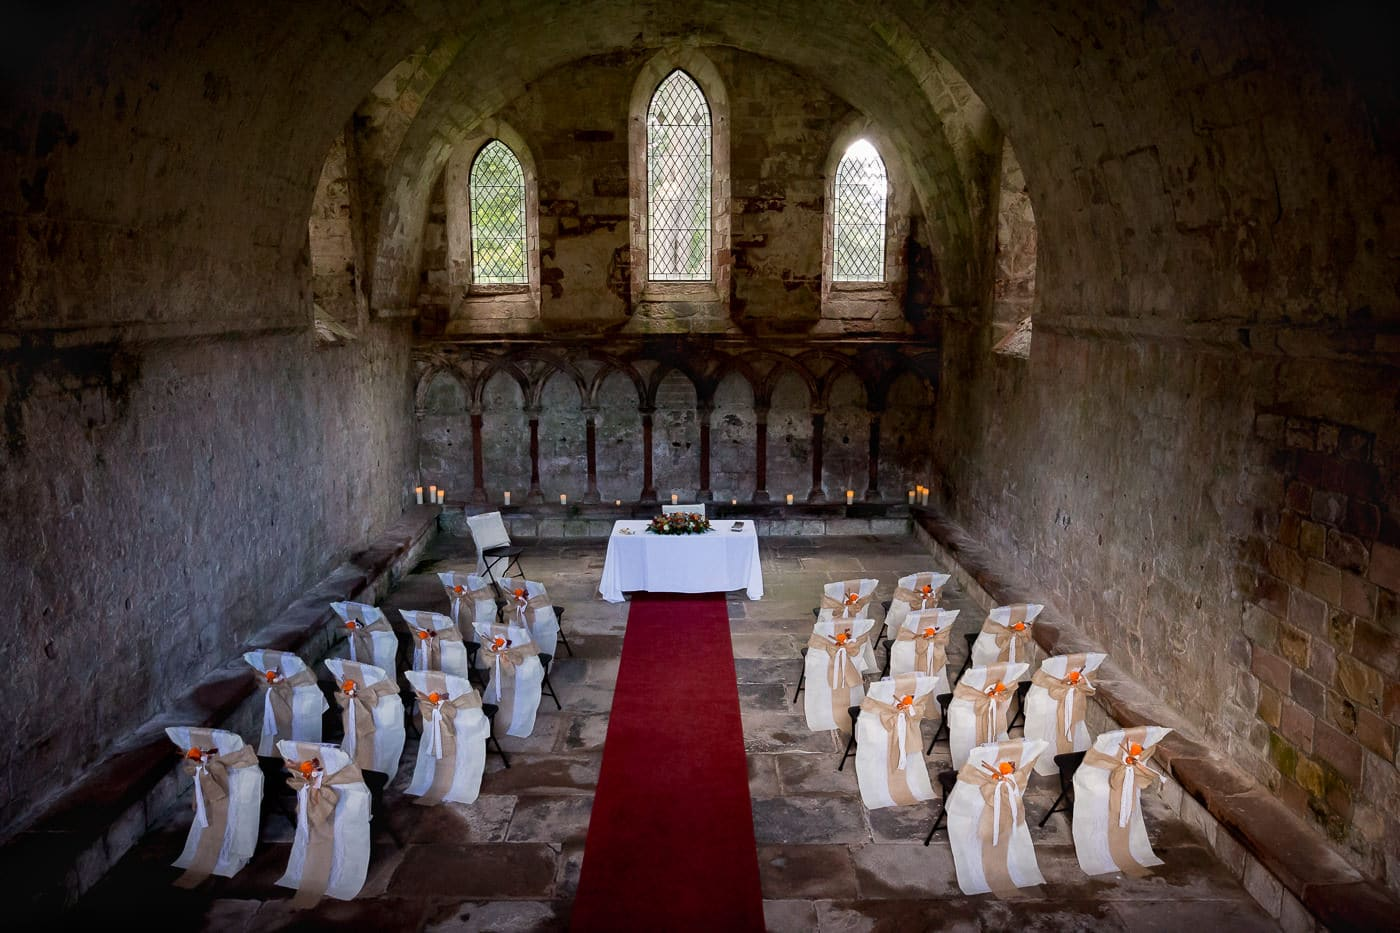 The Dryburgh Abbey's chapter house hosted the wedding ceremony